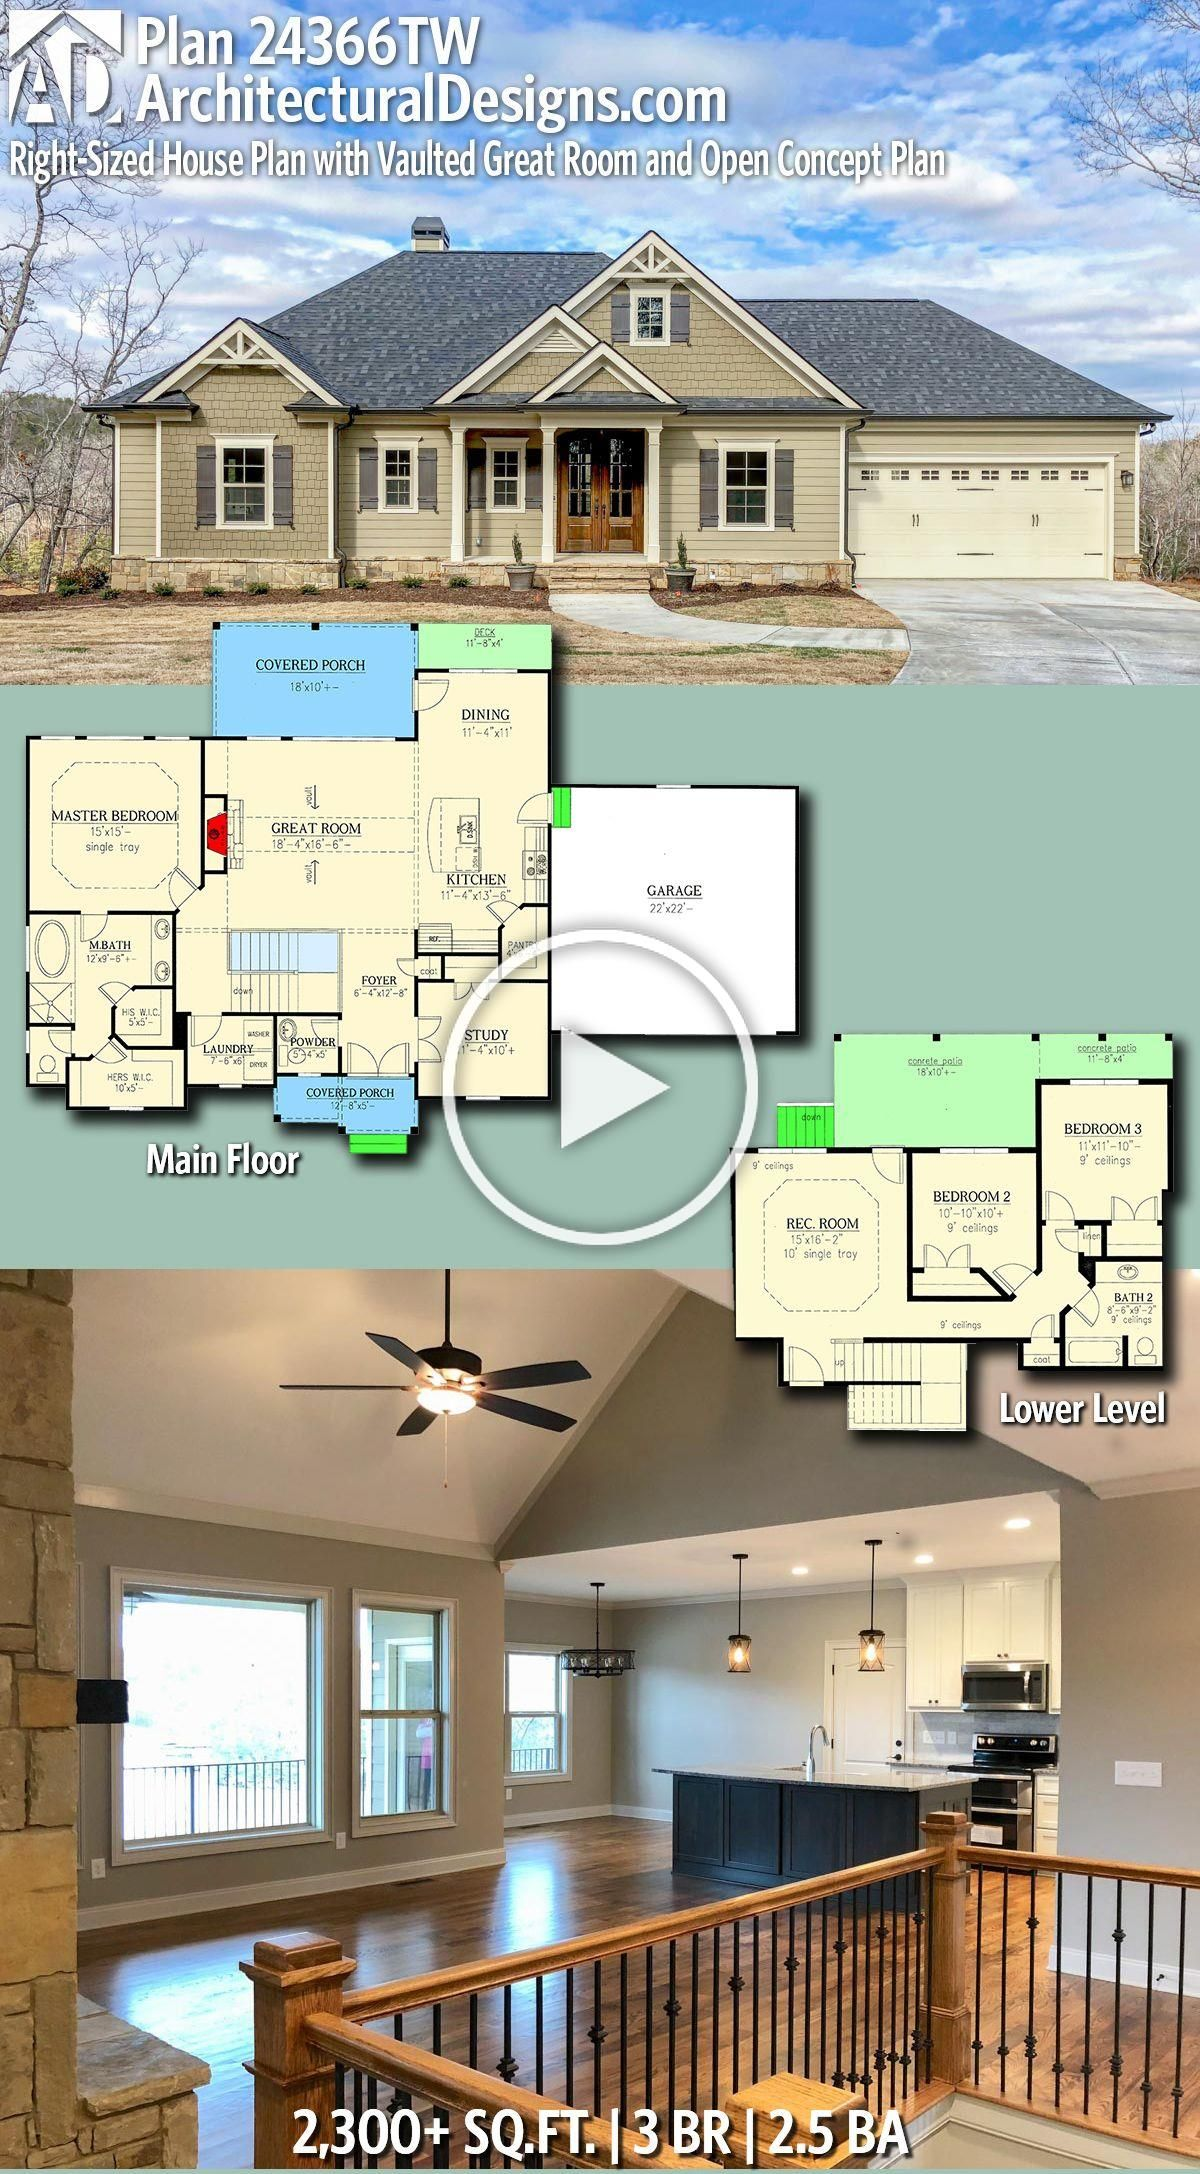 Architectural Designs House Plan 24366tw Has 3 Beds And 2 5 Baths And 2 300 Square Feet Architectural Design House Plans House Plans New House Plans